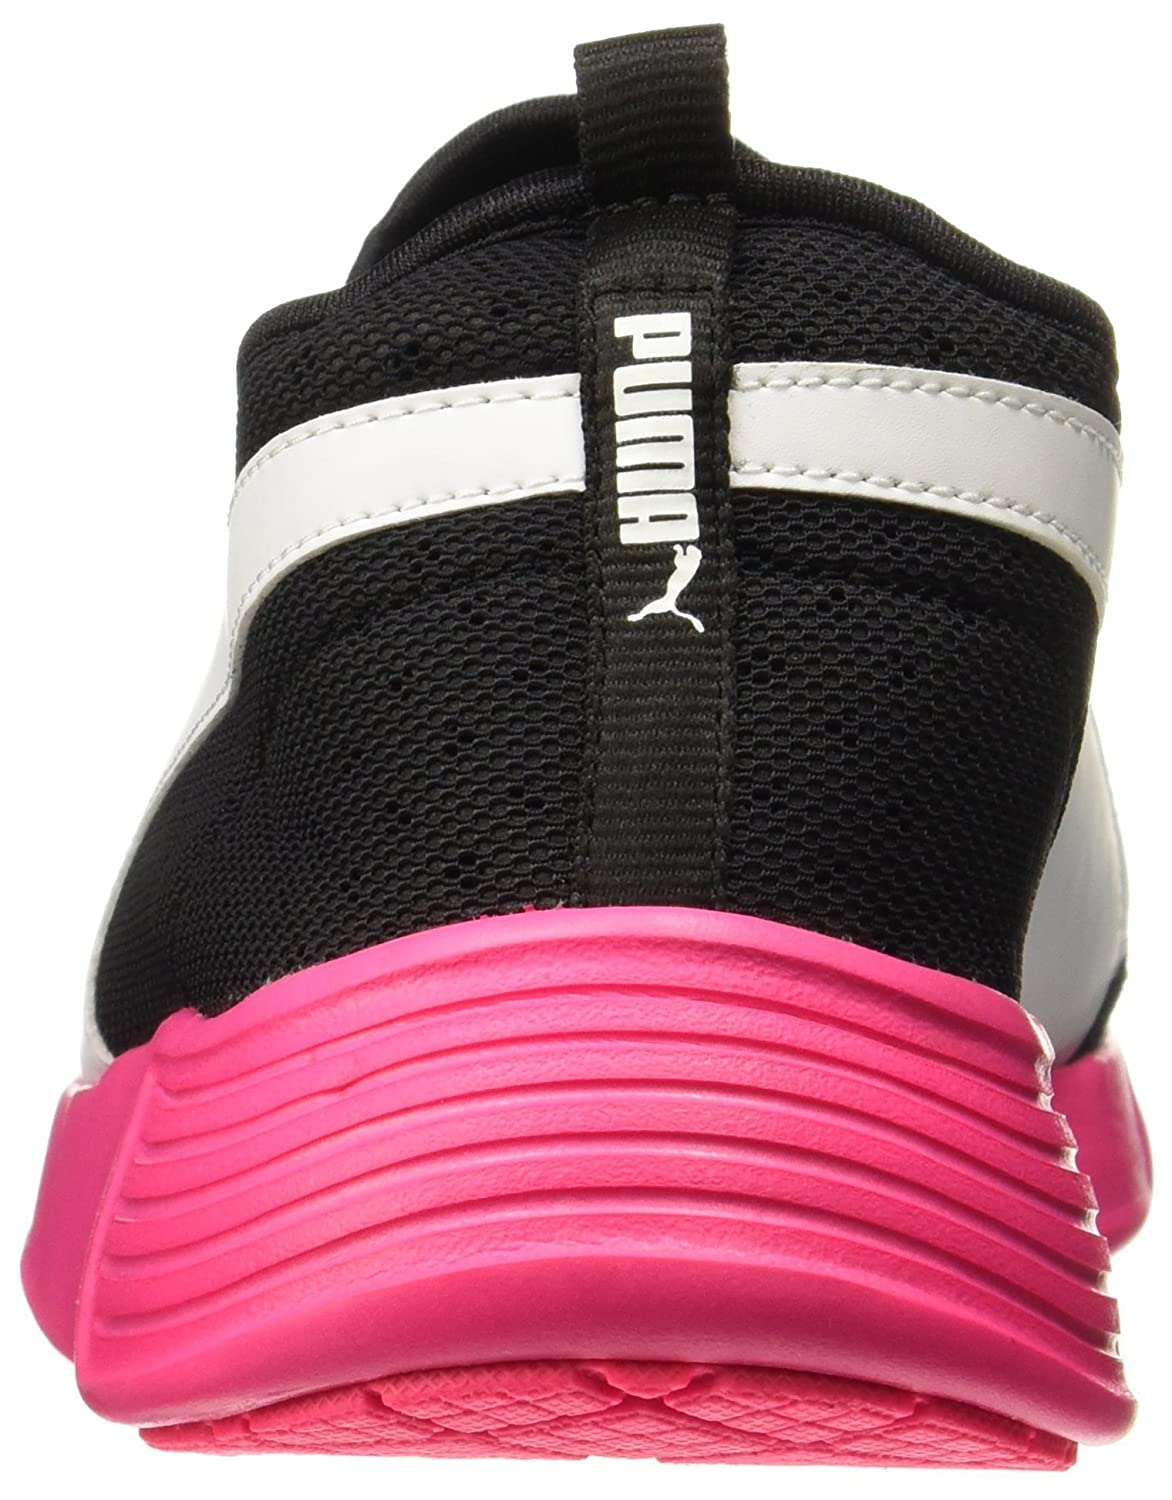 493851334ec Puma Men s St Trainer Evo Slip-On Dp Black-Knockout Pink Multisport Training  Shoes  Buy Online at Low Prices in India - Amazon.in